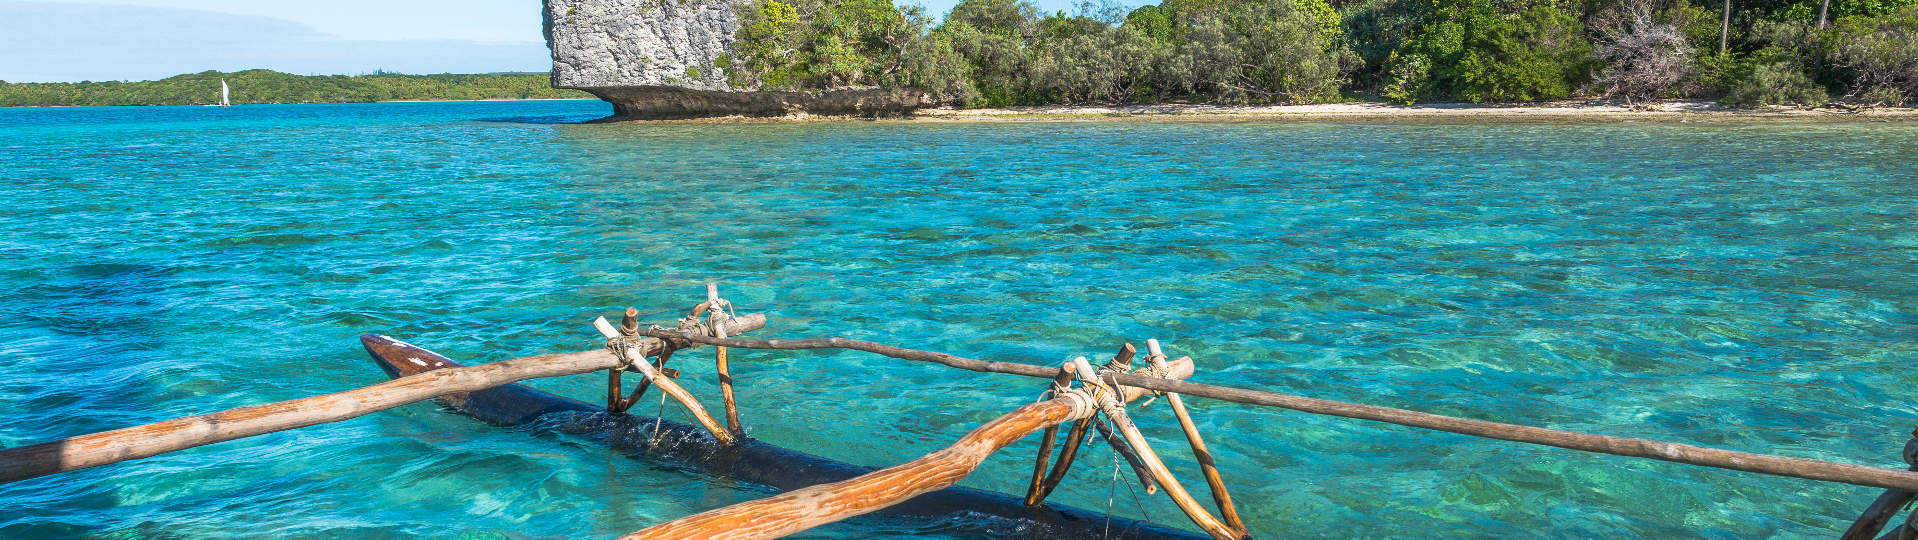 Outrigger canoe on the lagoon in the Isle of Pines